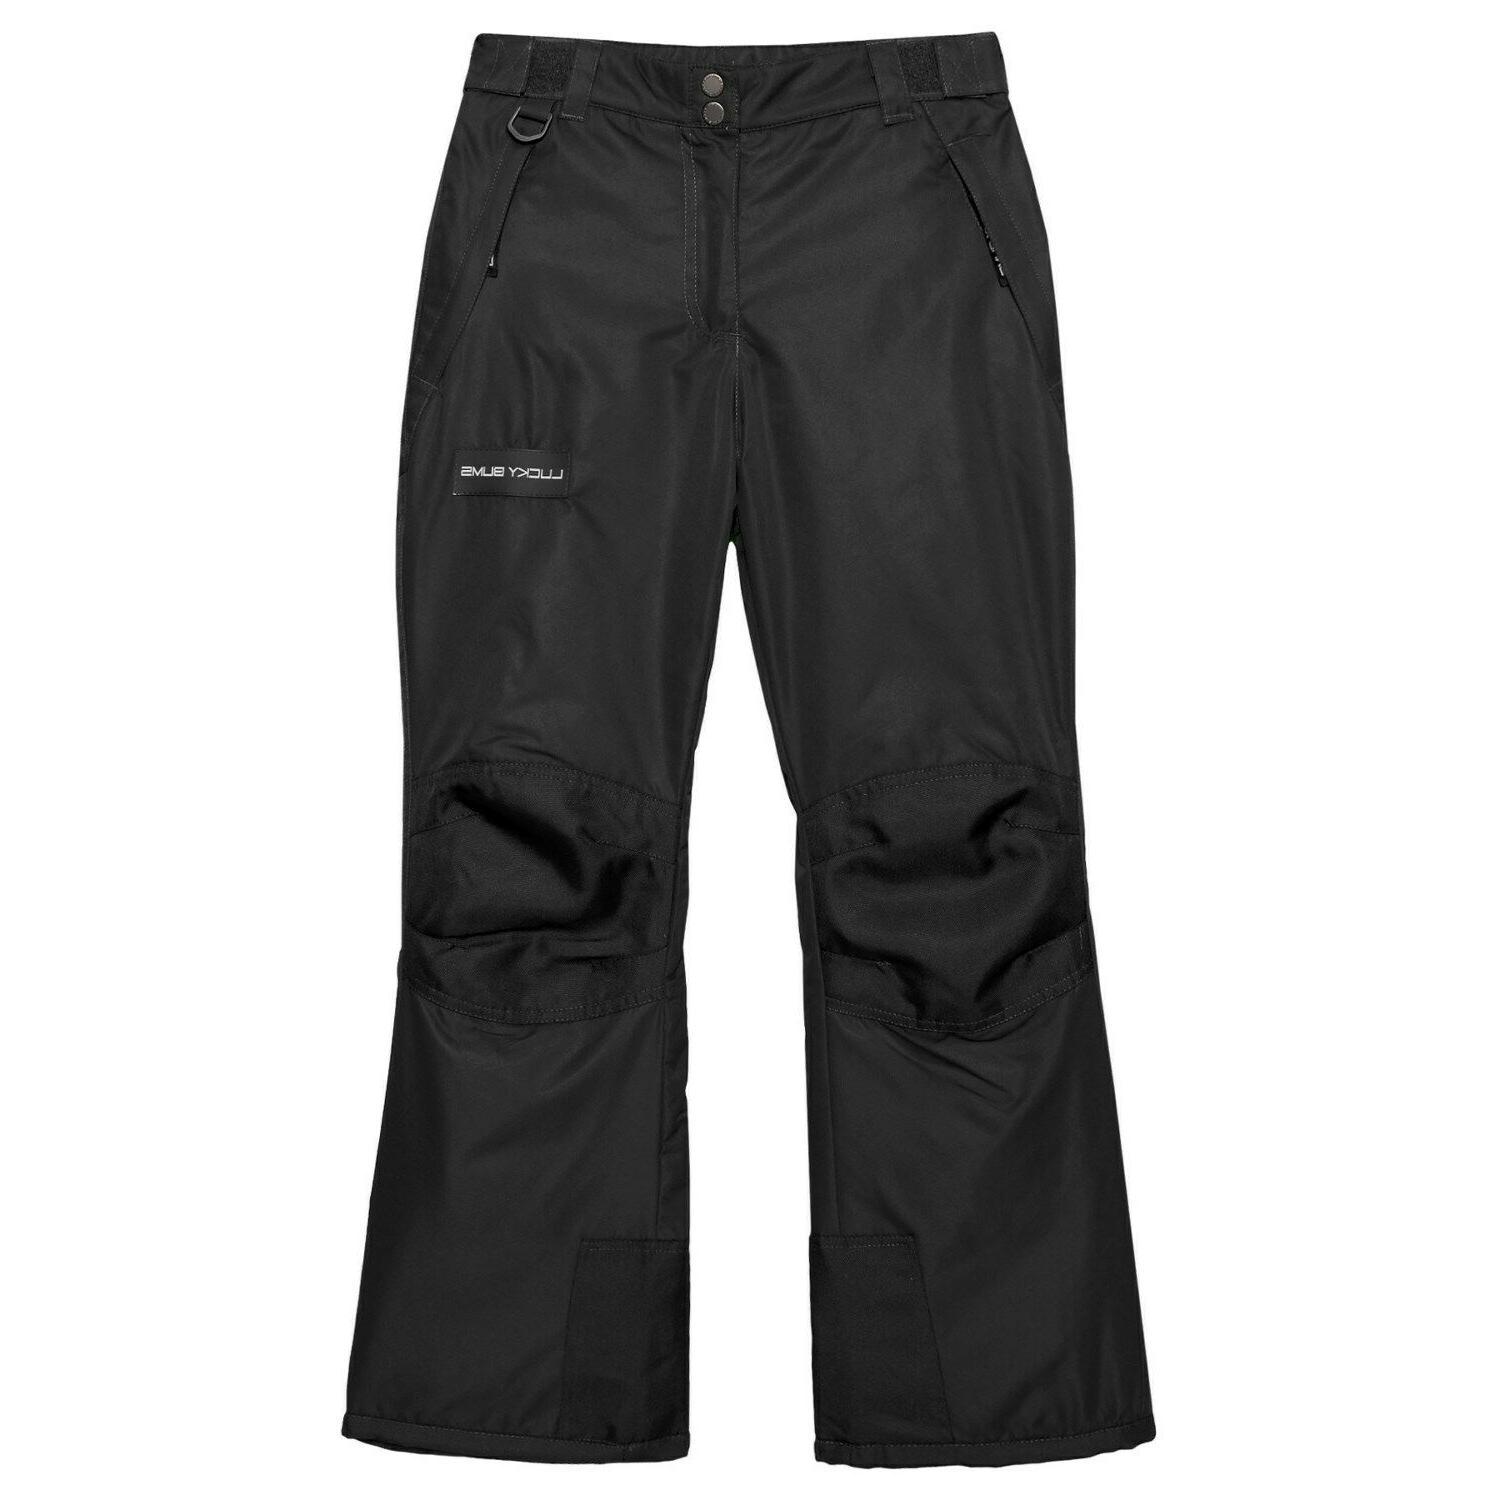 adult snow ski pants with reinforced knees